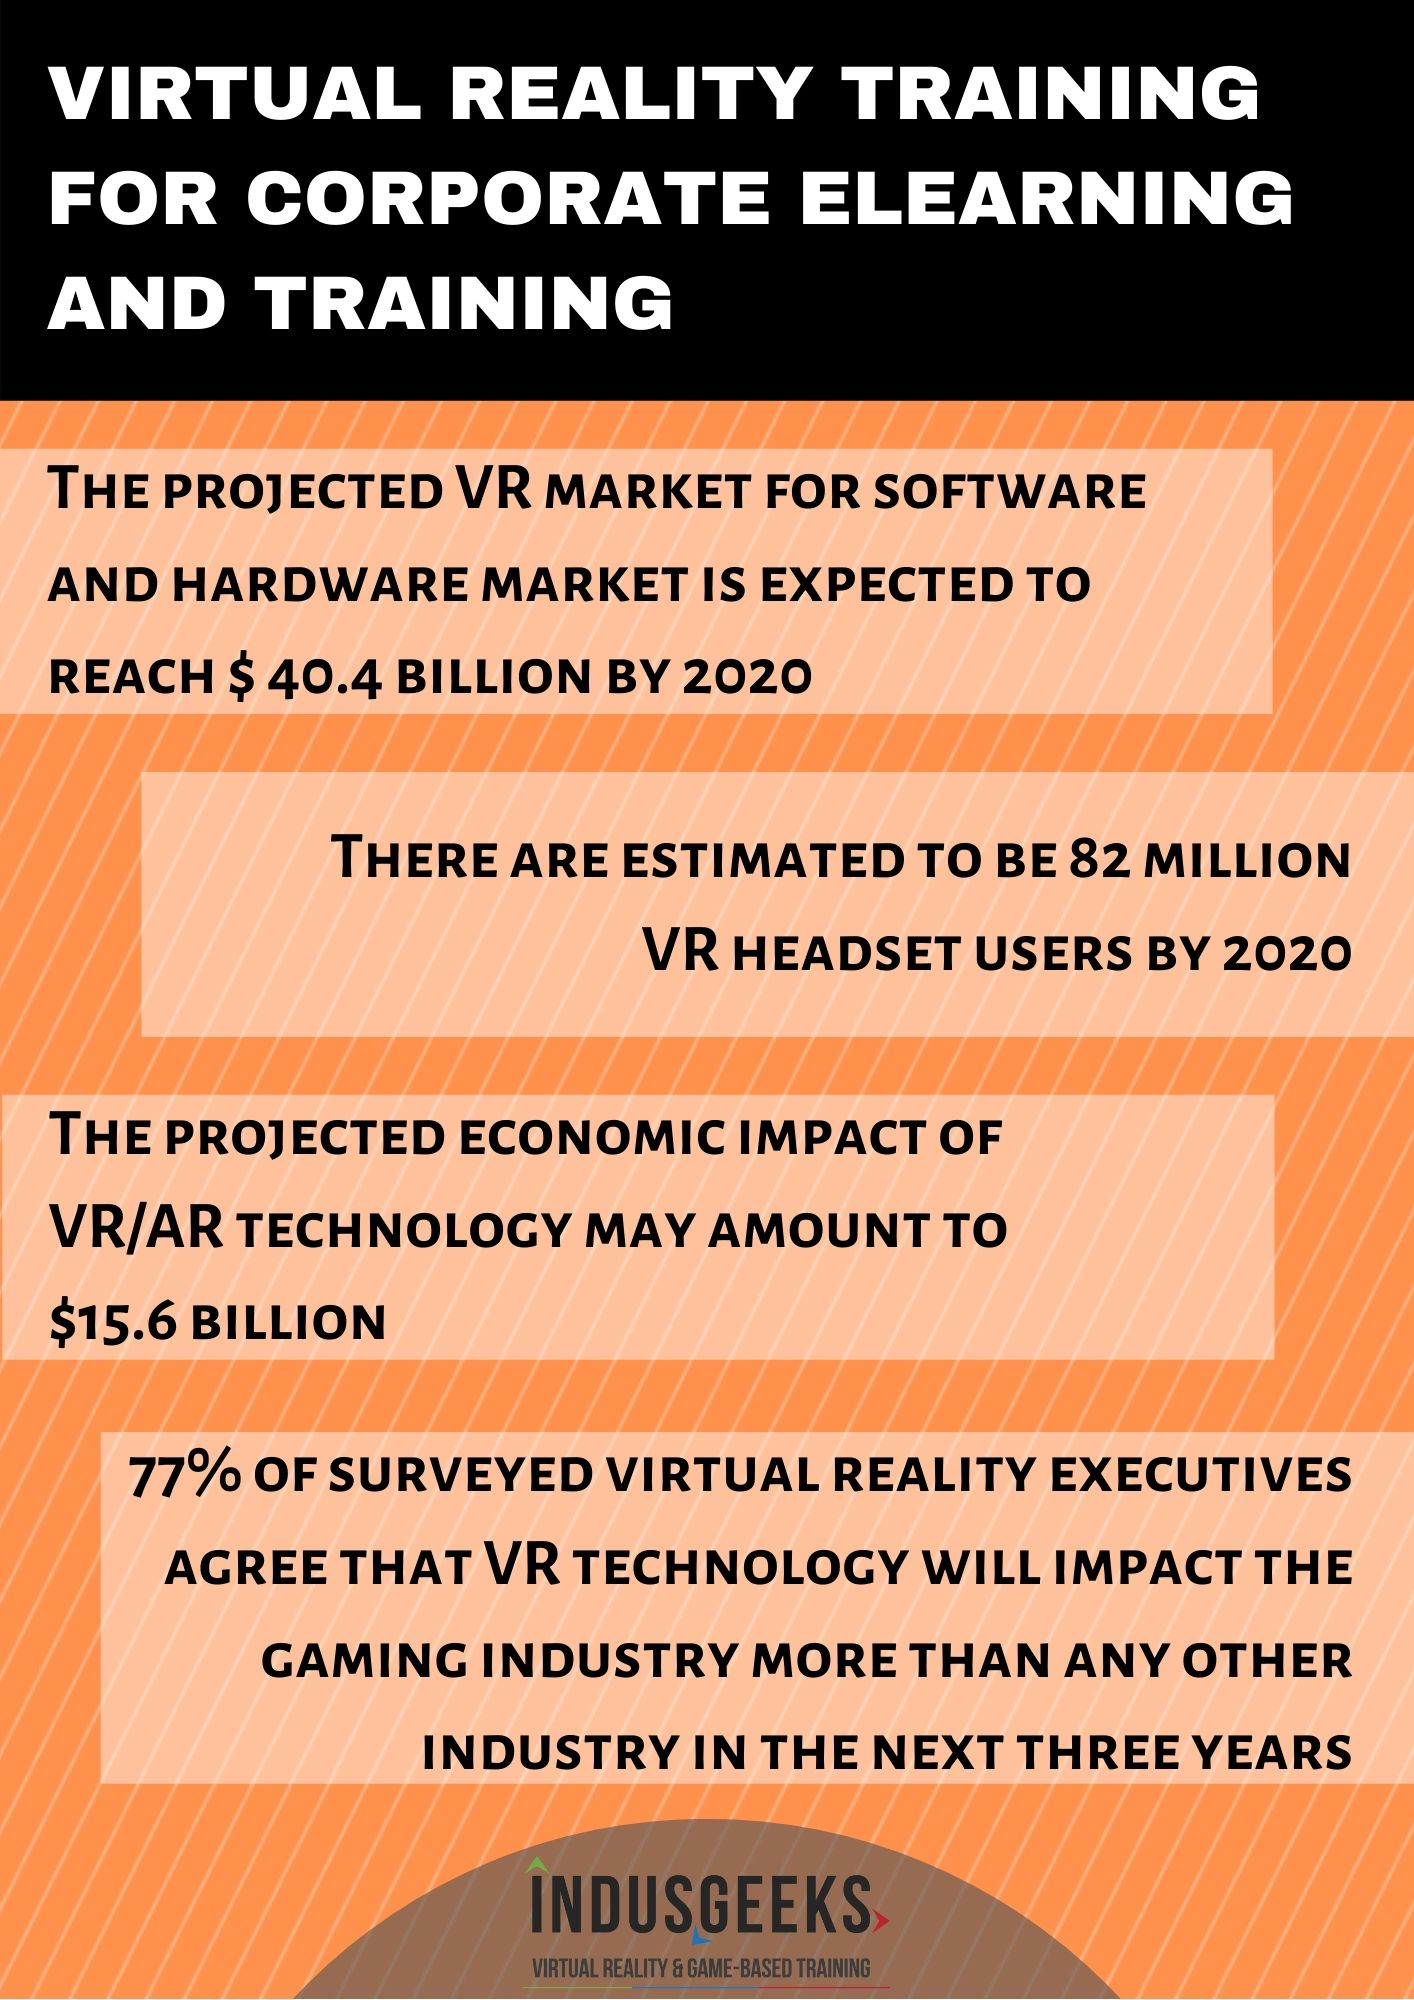 Virtual reality training for corporate e-learning and employee training